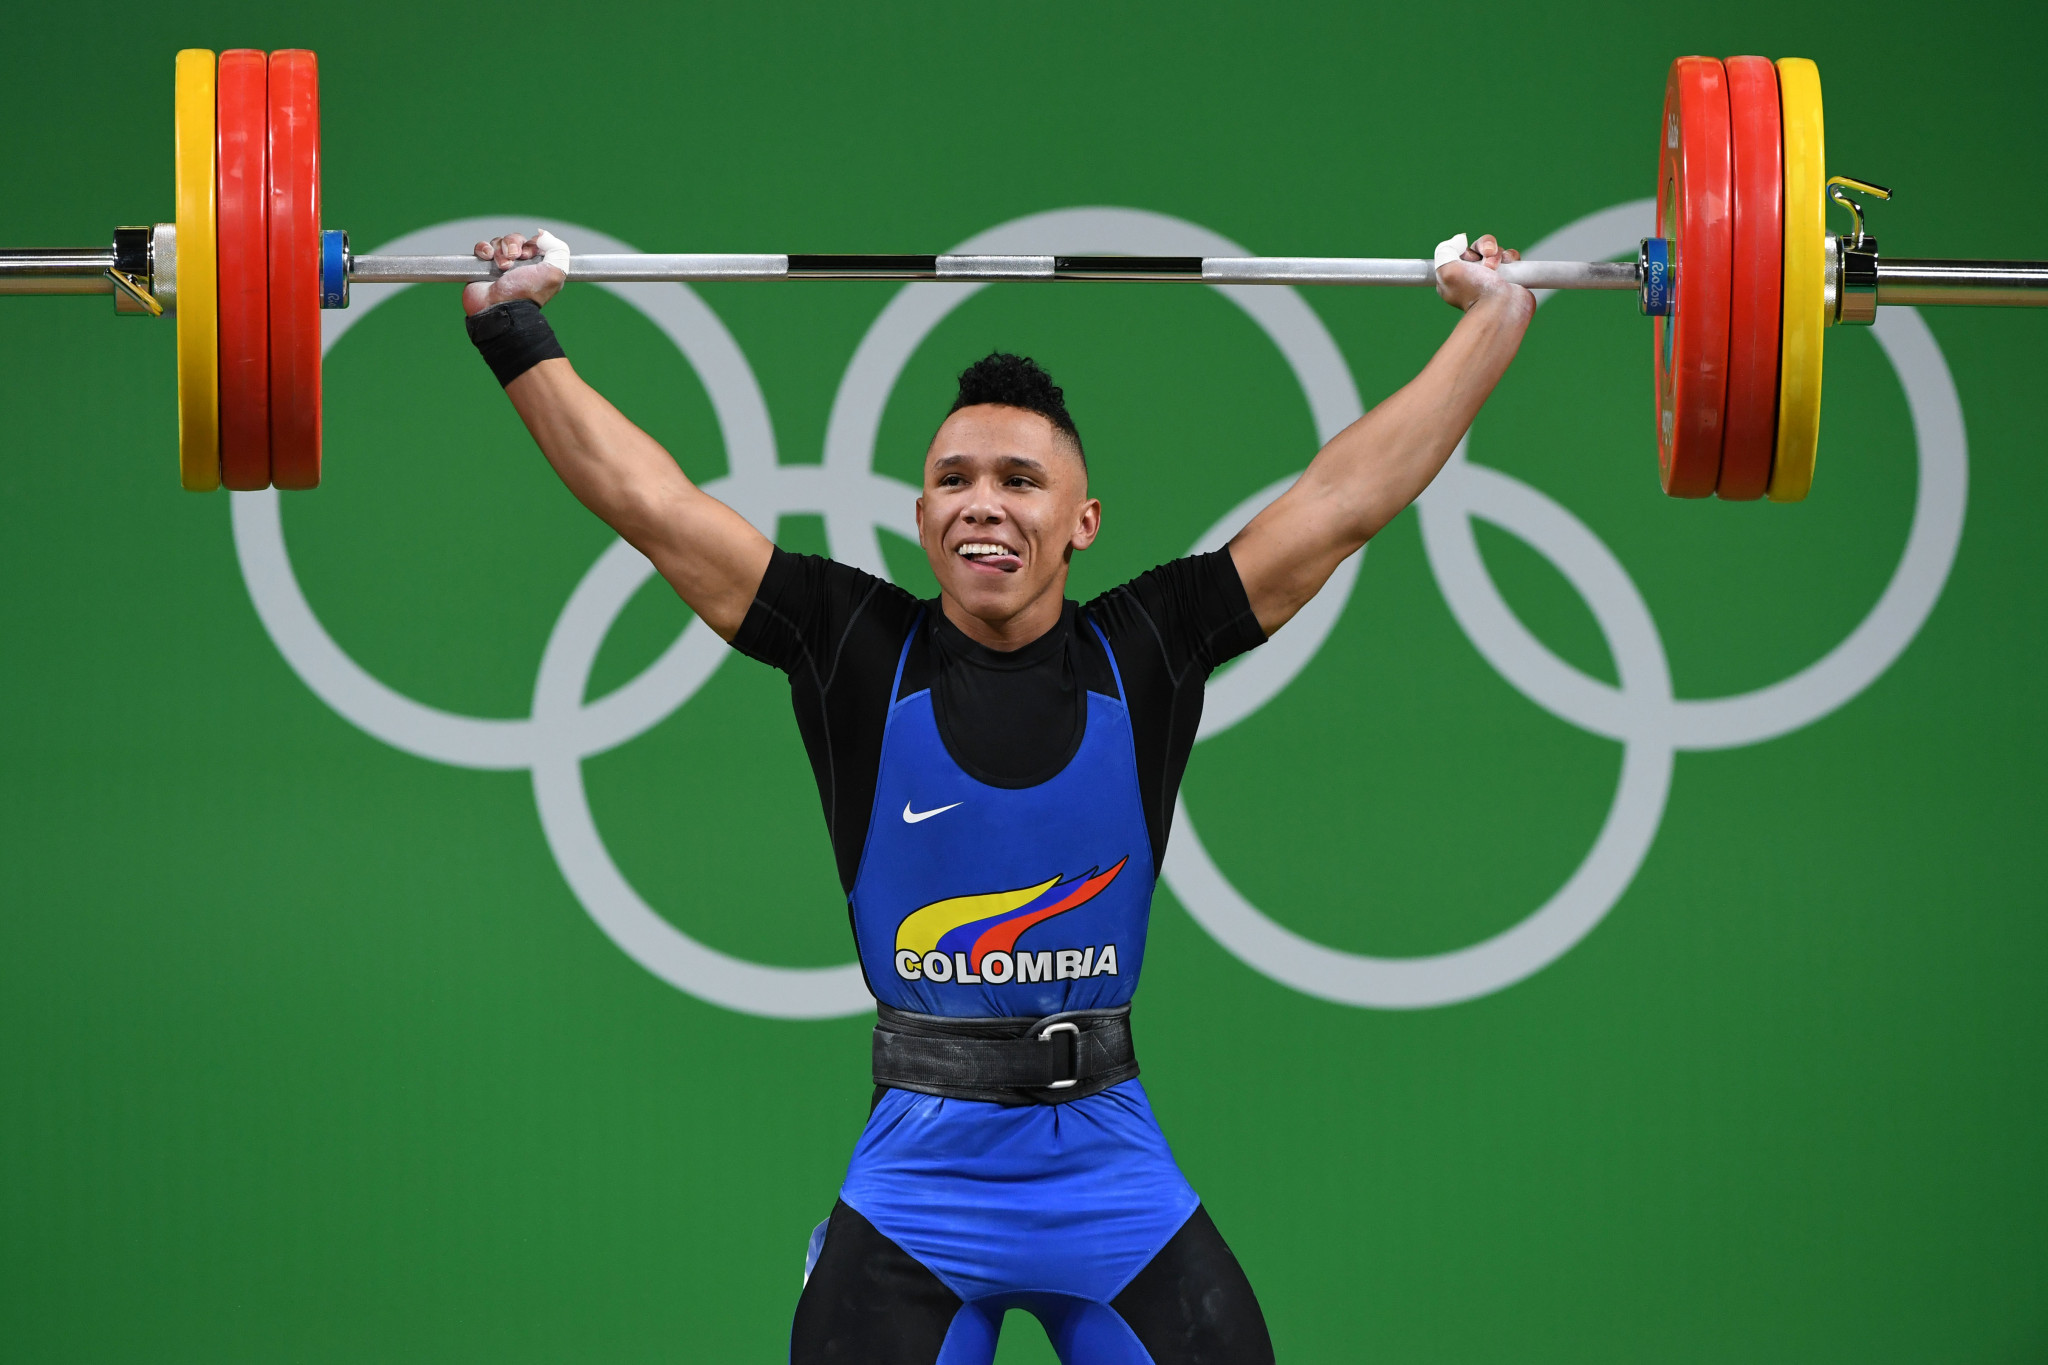 Luis Javier Mosquera was the standout weightlifter on home turf in Cali  ©Getty Images